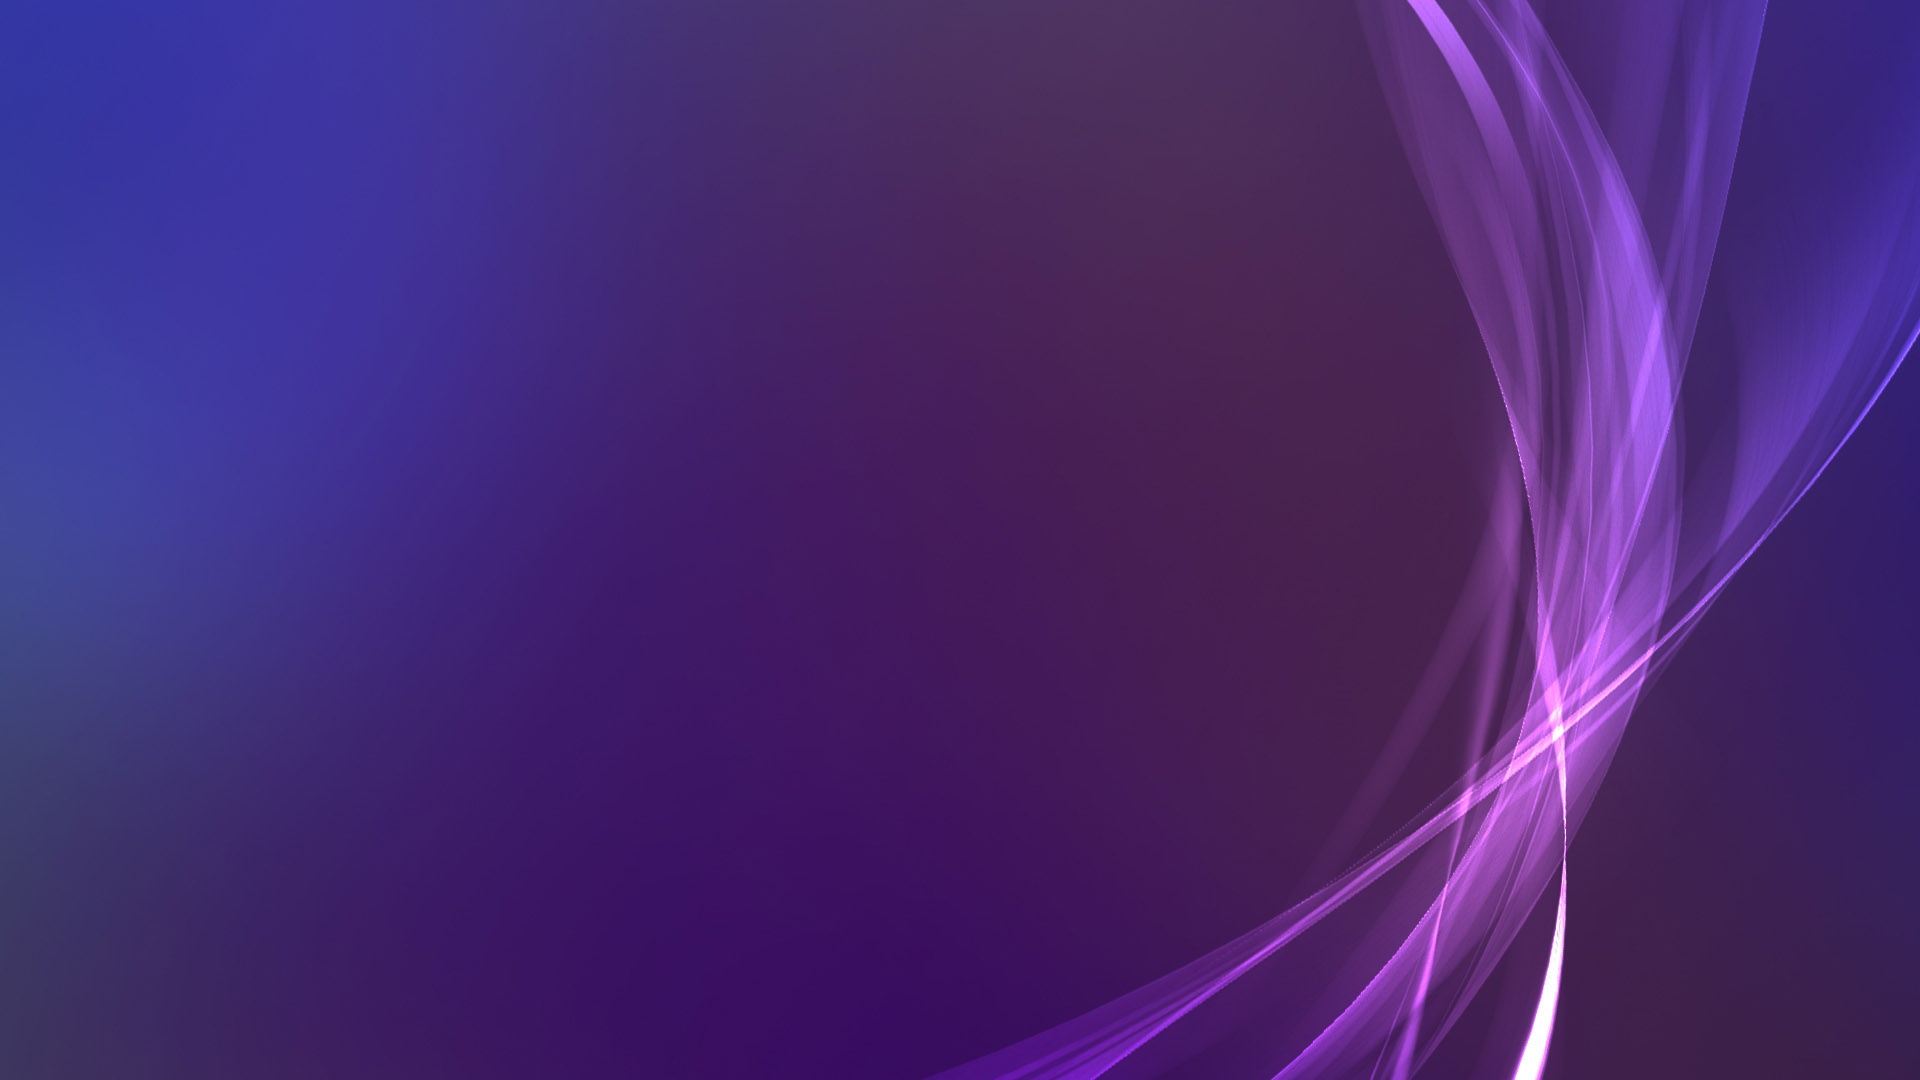 Purple Backround 1920x1080 HD Image Abstract 3D 1920x1080